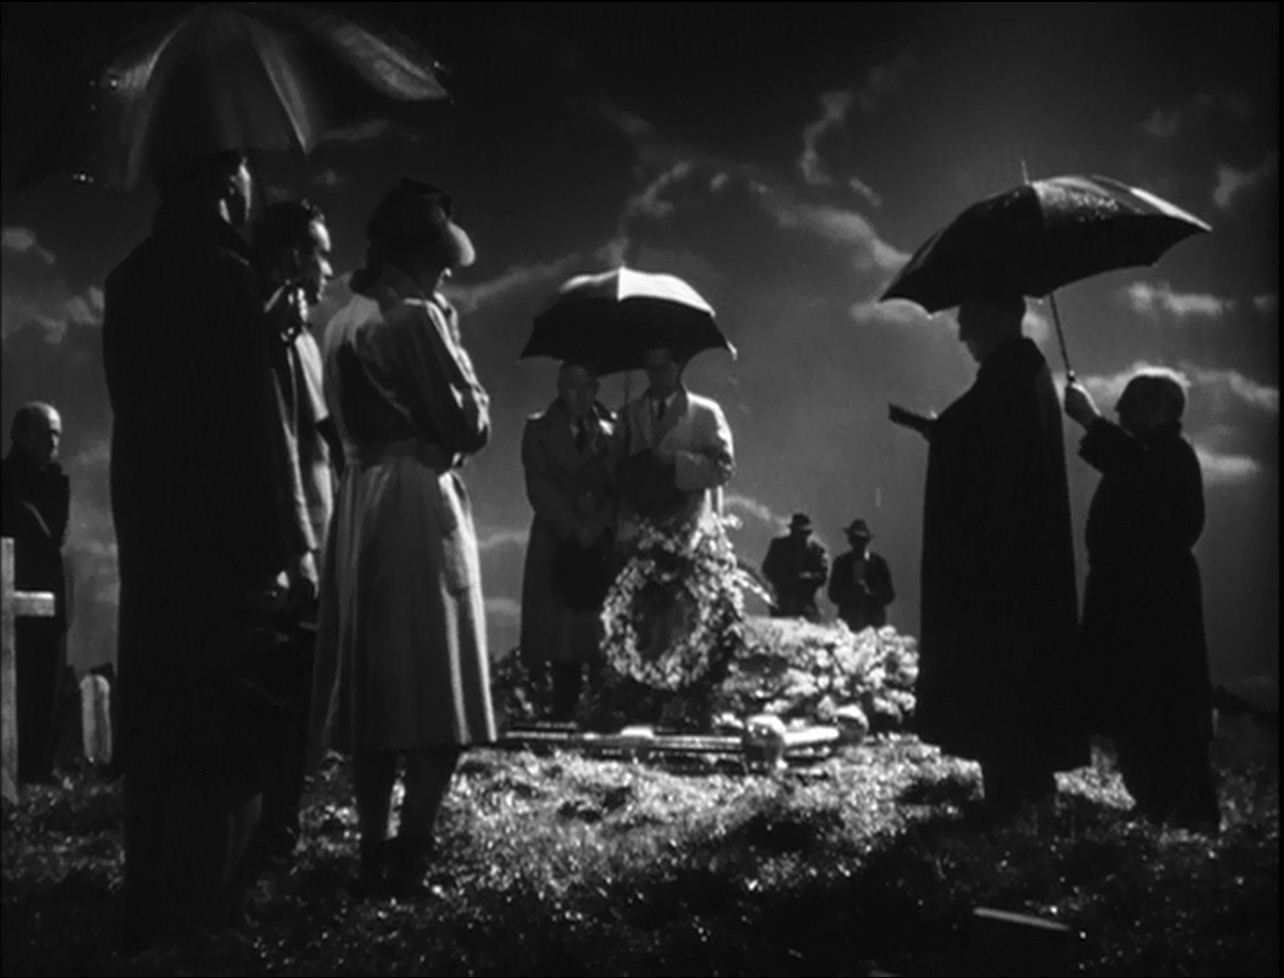 The Swede's funeral. I have a weakness for indoor rain scenes. Edmond O'Brien, Sam Levene and Virginia Christine are in the left foreground.